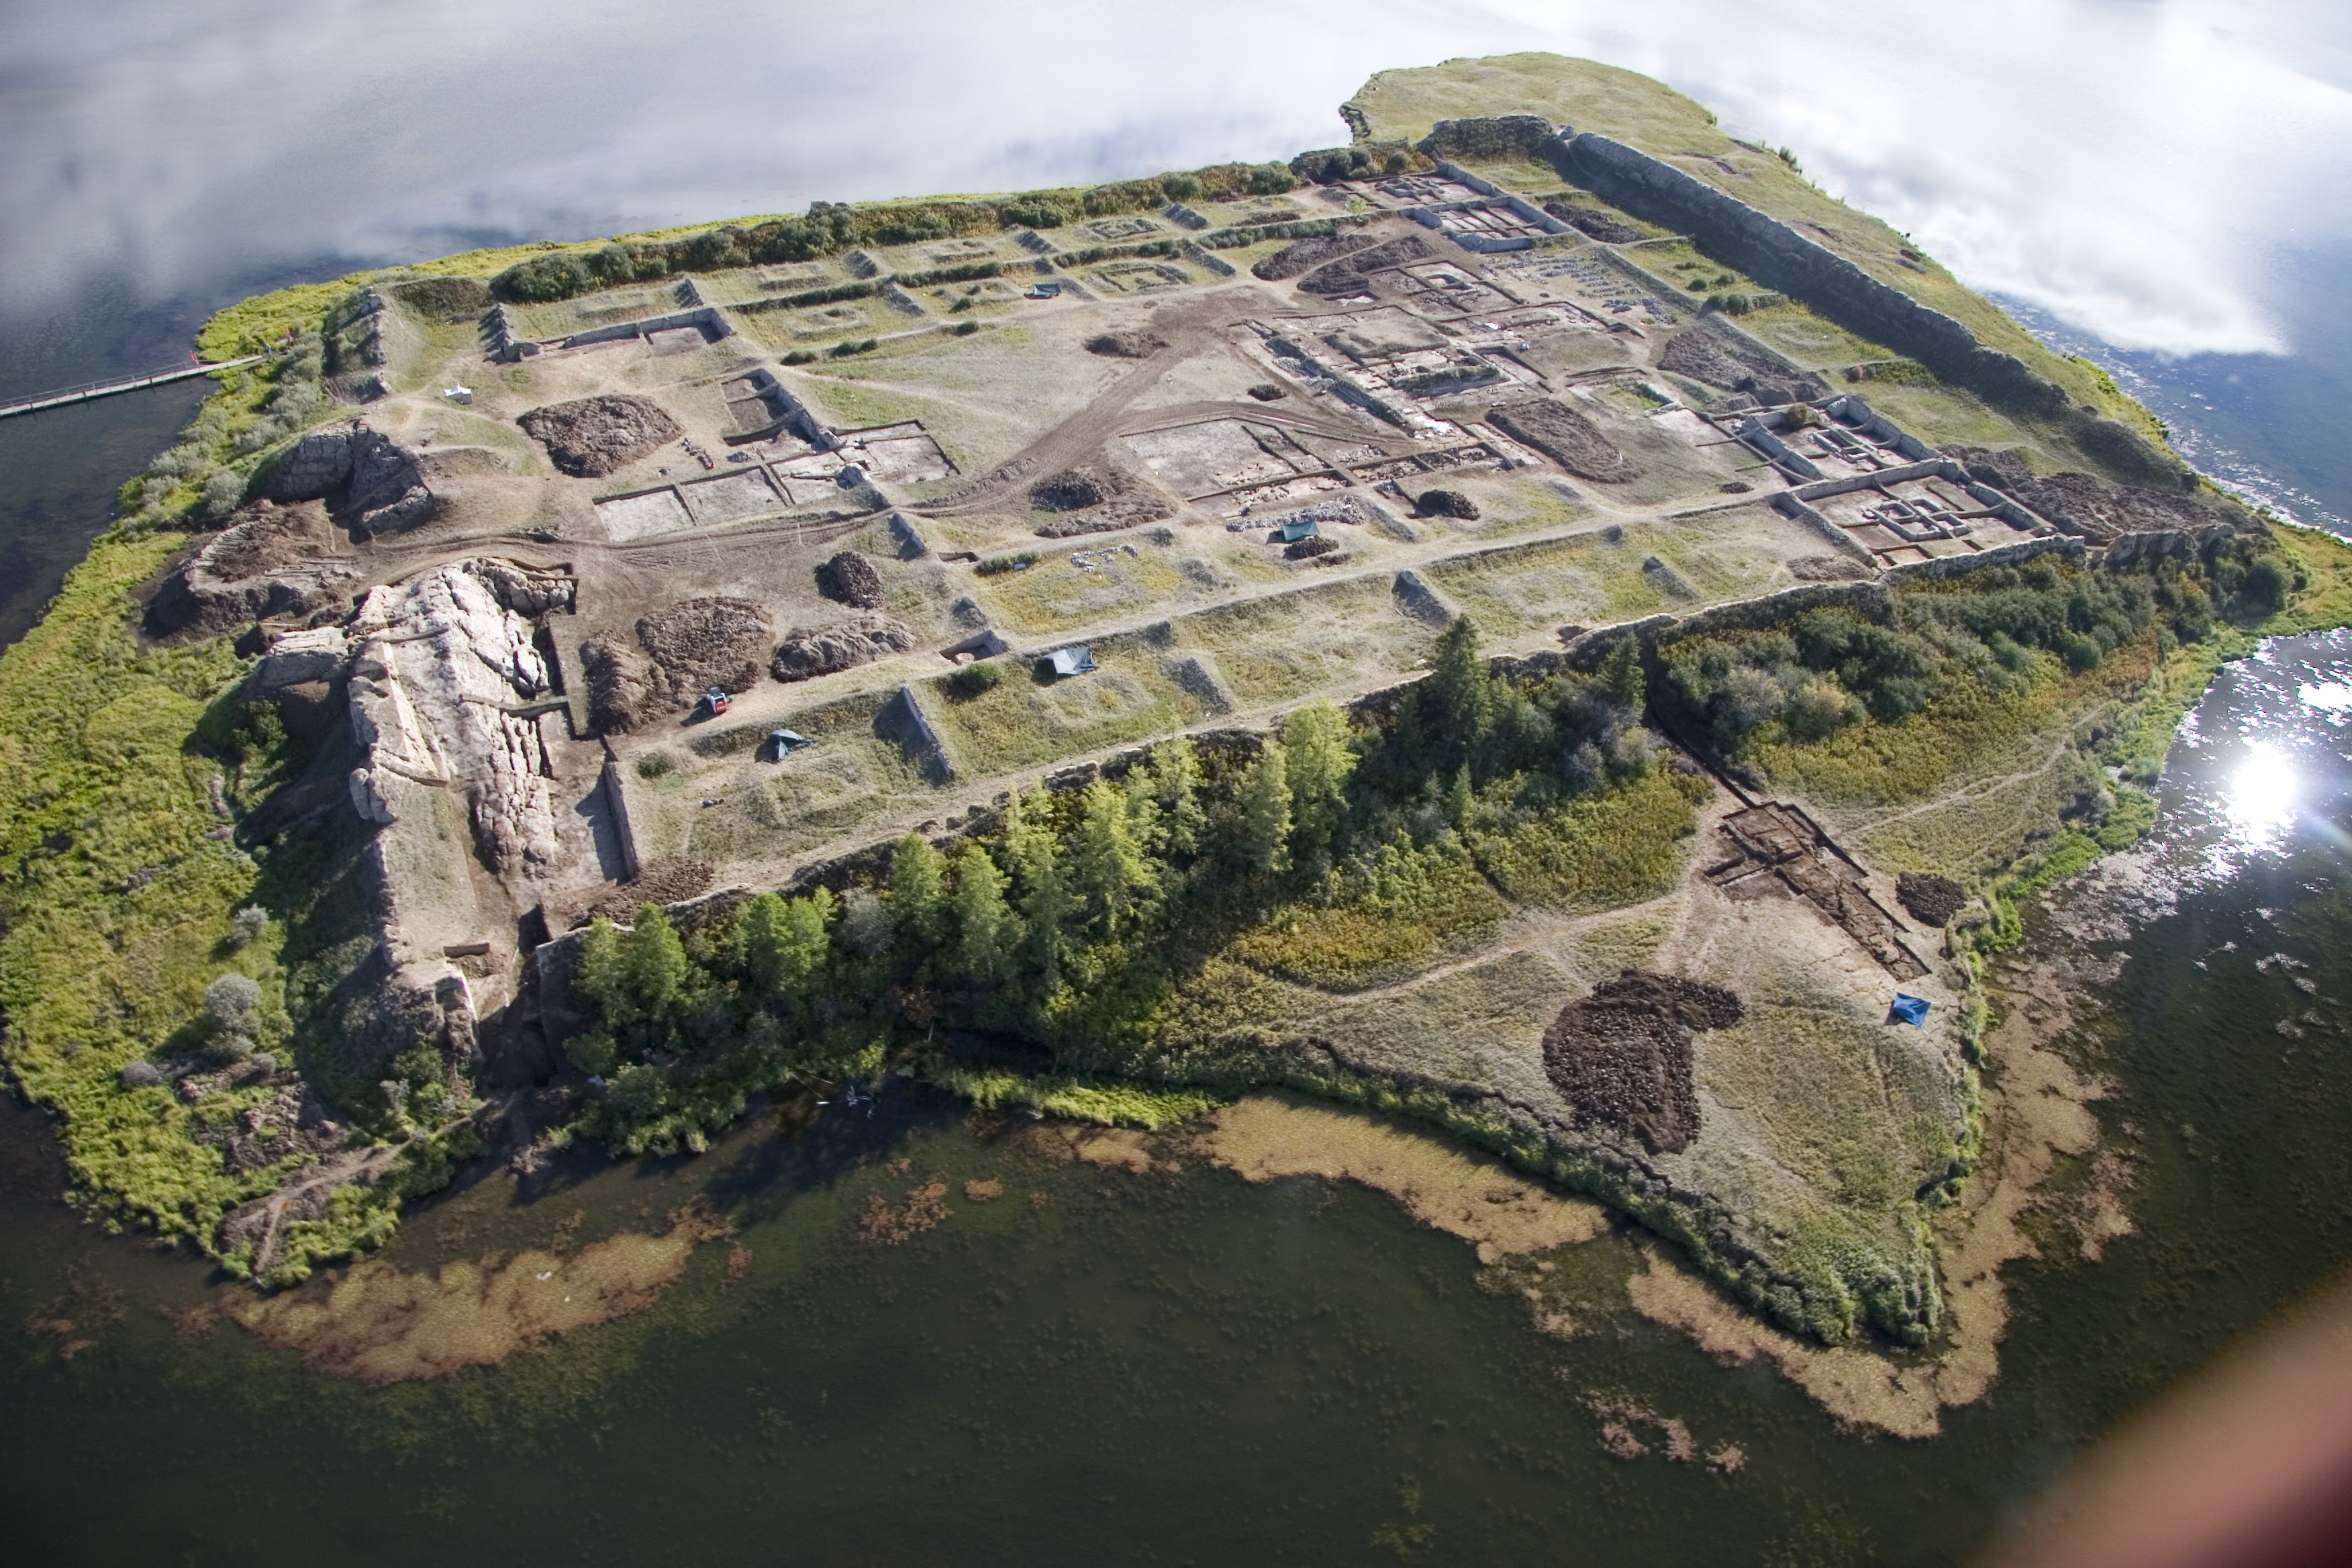 Por-Bazhyn is Russia's most mysterious archaeological site located in the center of a remote lake (Tere-Khol) of Southern Siberia.